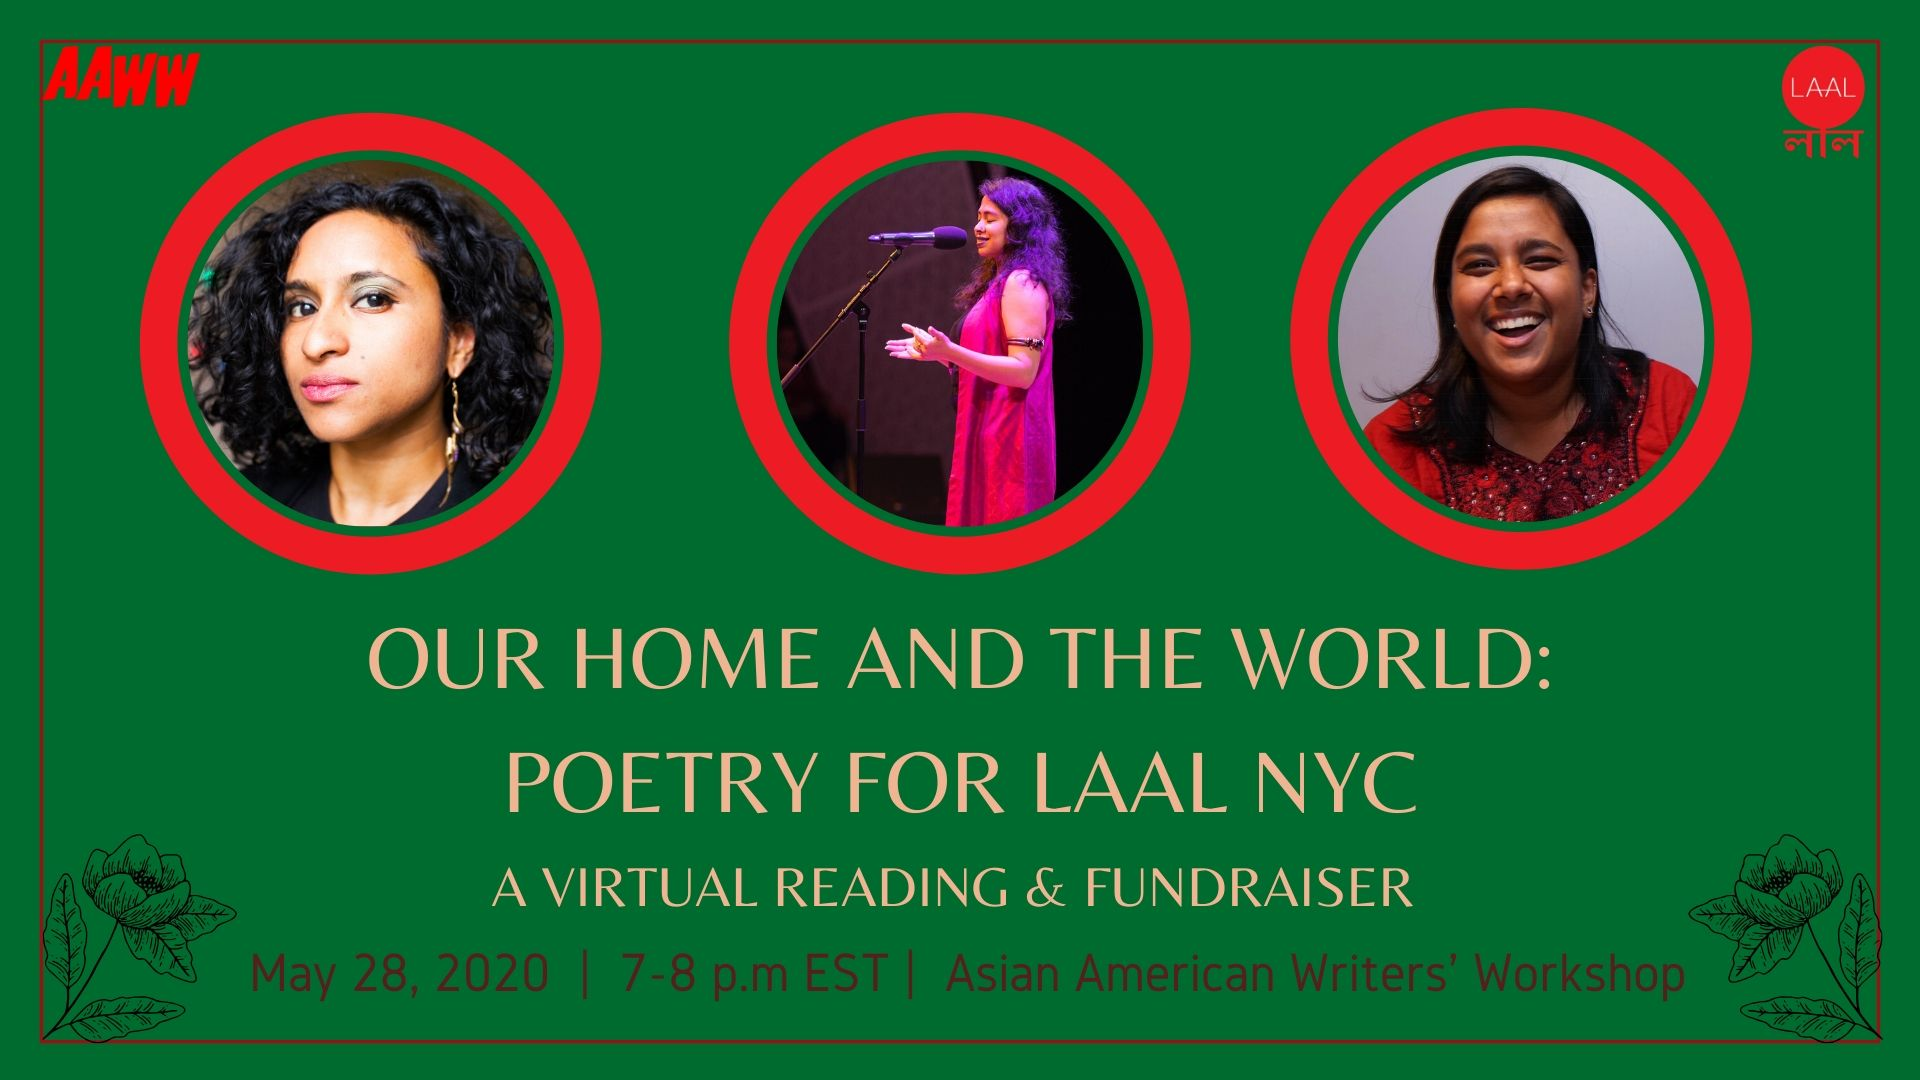 Our Home and the World: Poetry for Laal NYC